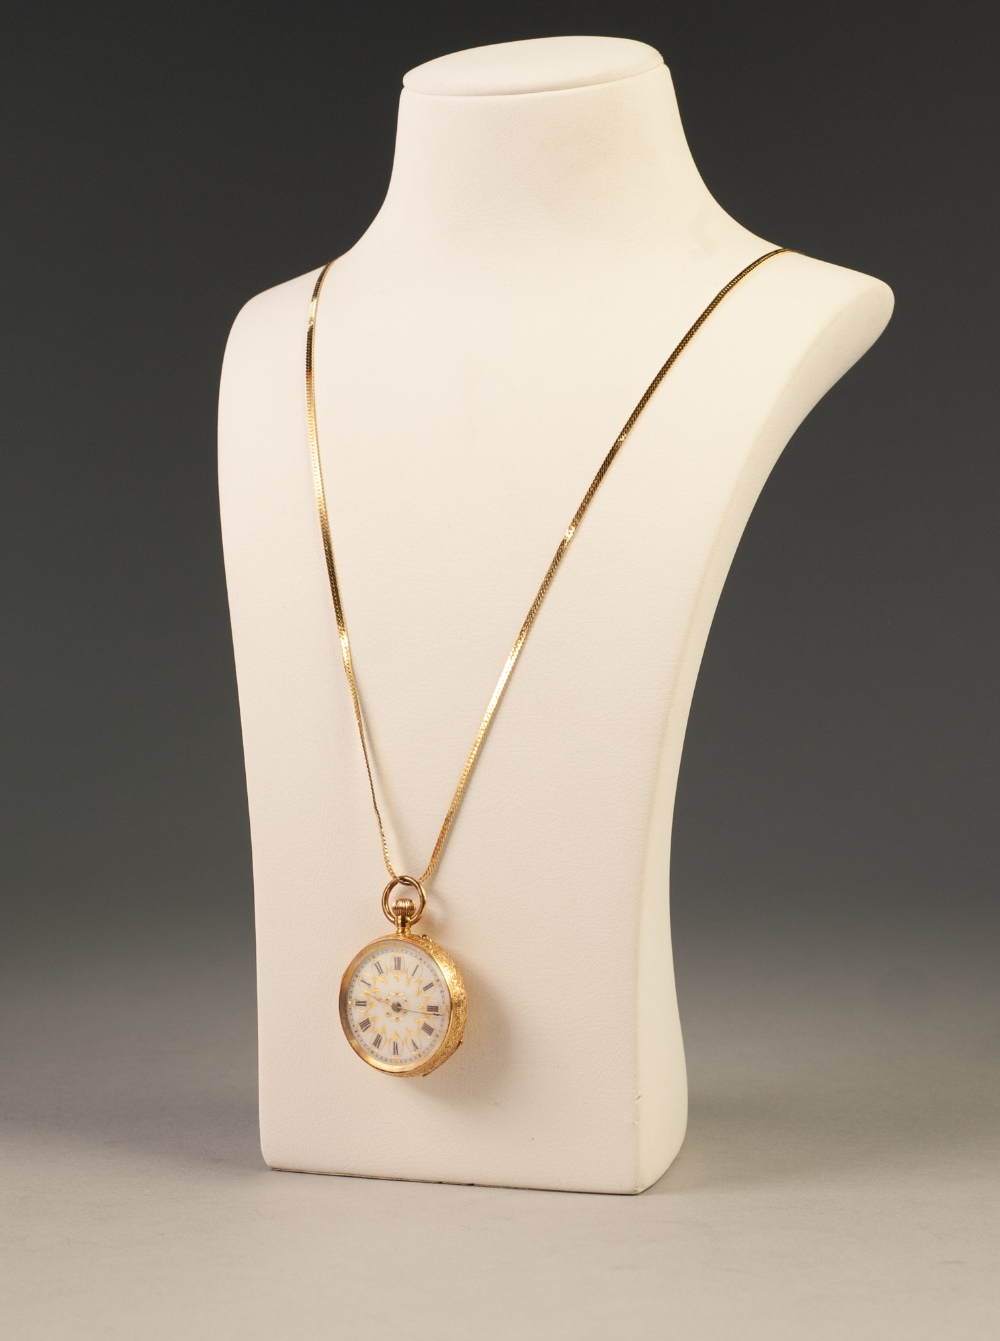 Lot 35 - LADY'S 18ct GOLD POCKET WATCH, with keyless movement, gilt decorated porcelain Roman dial, the